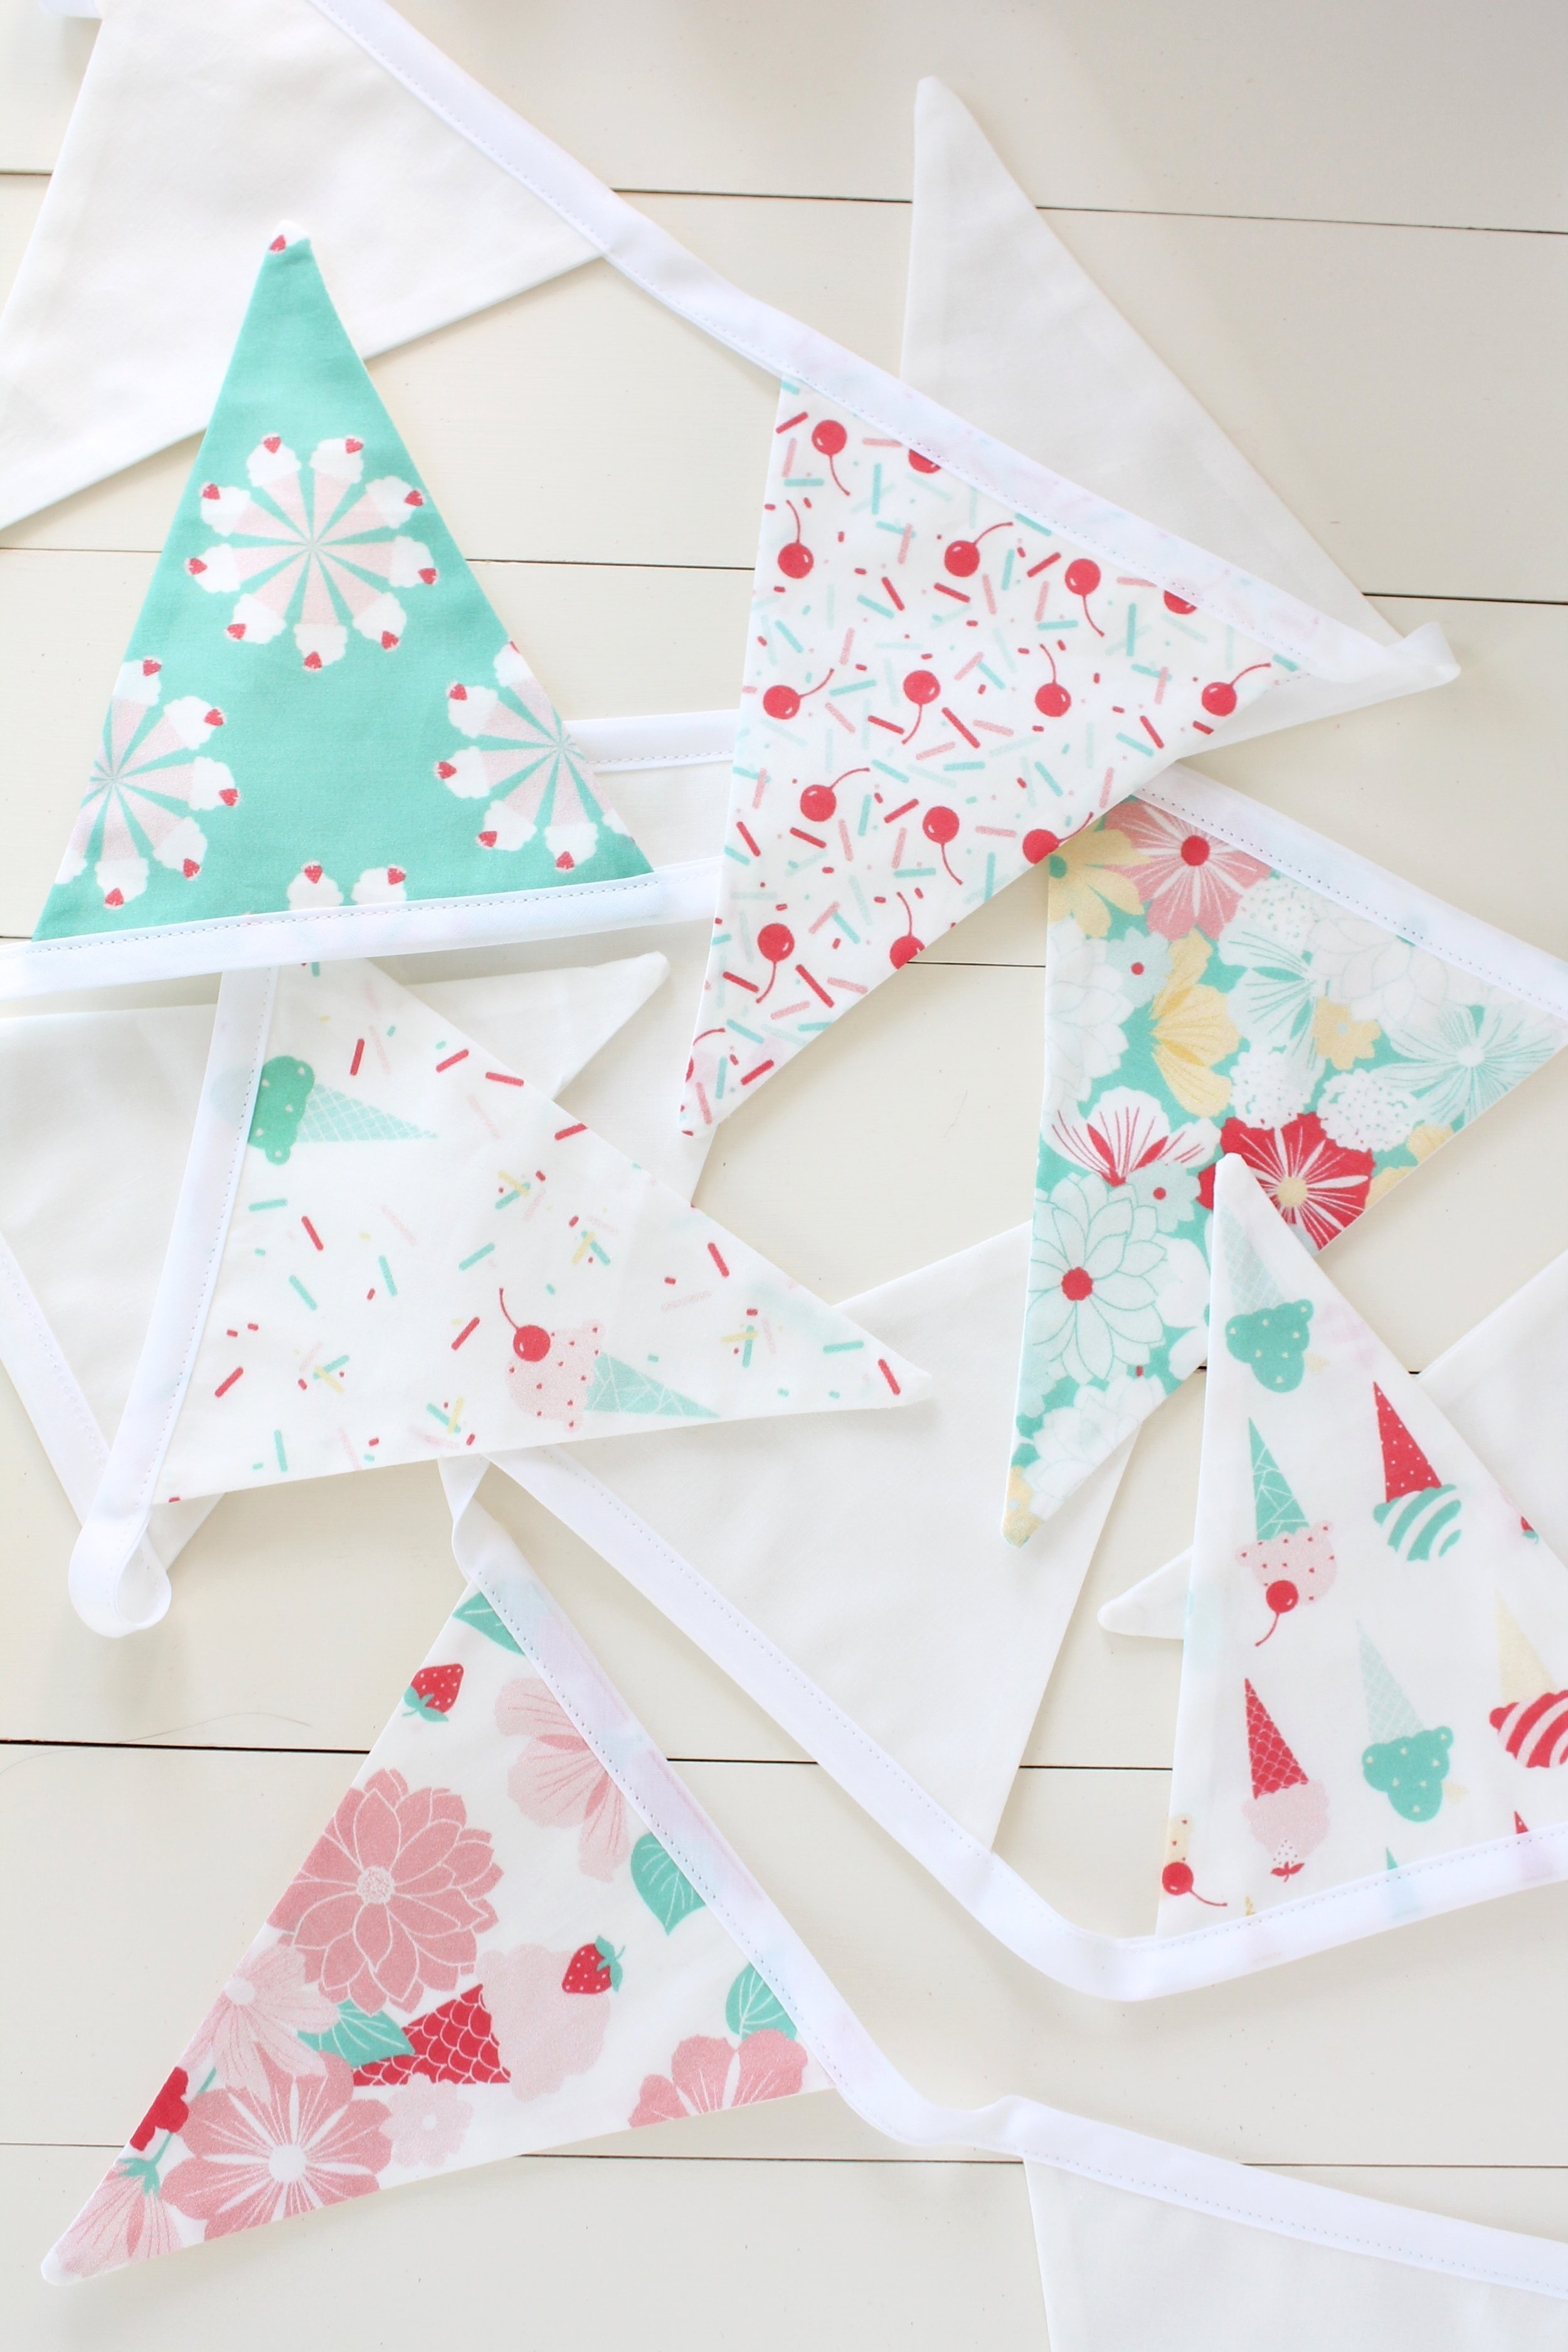 Bunting made by Tessie Fay